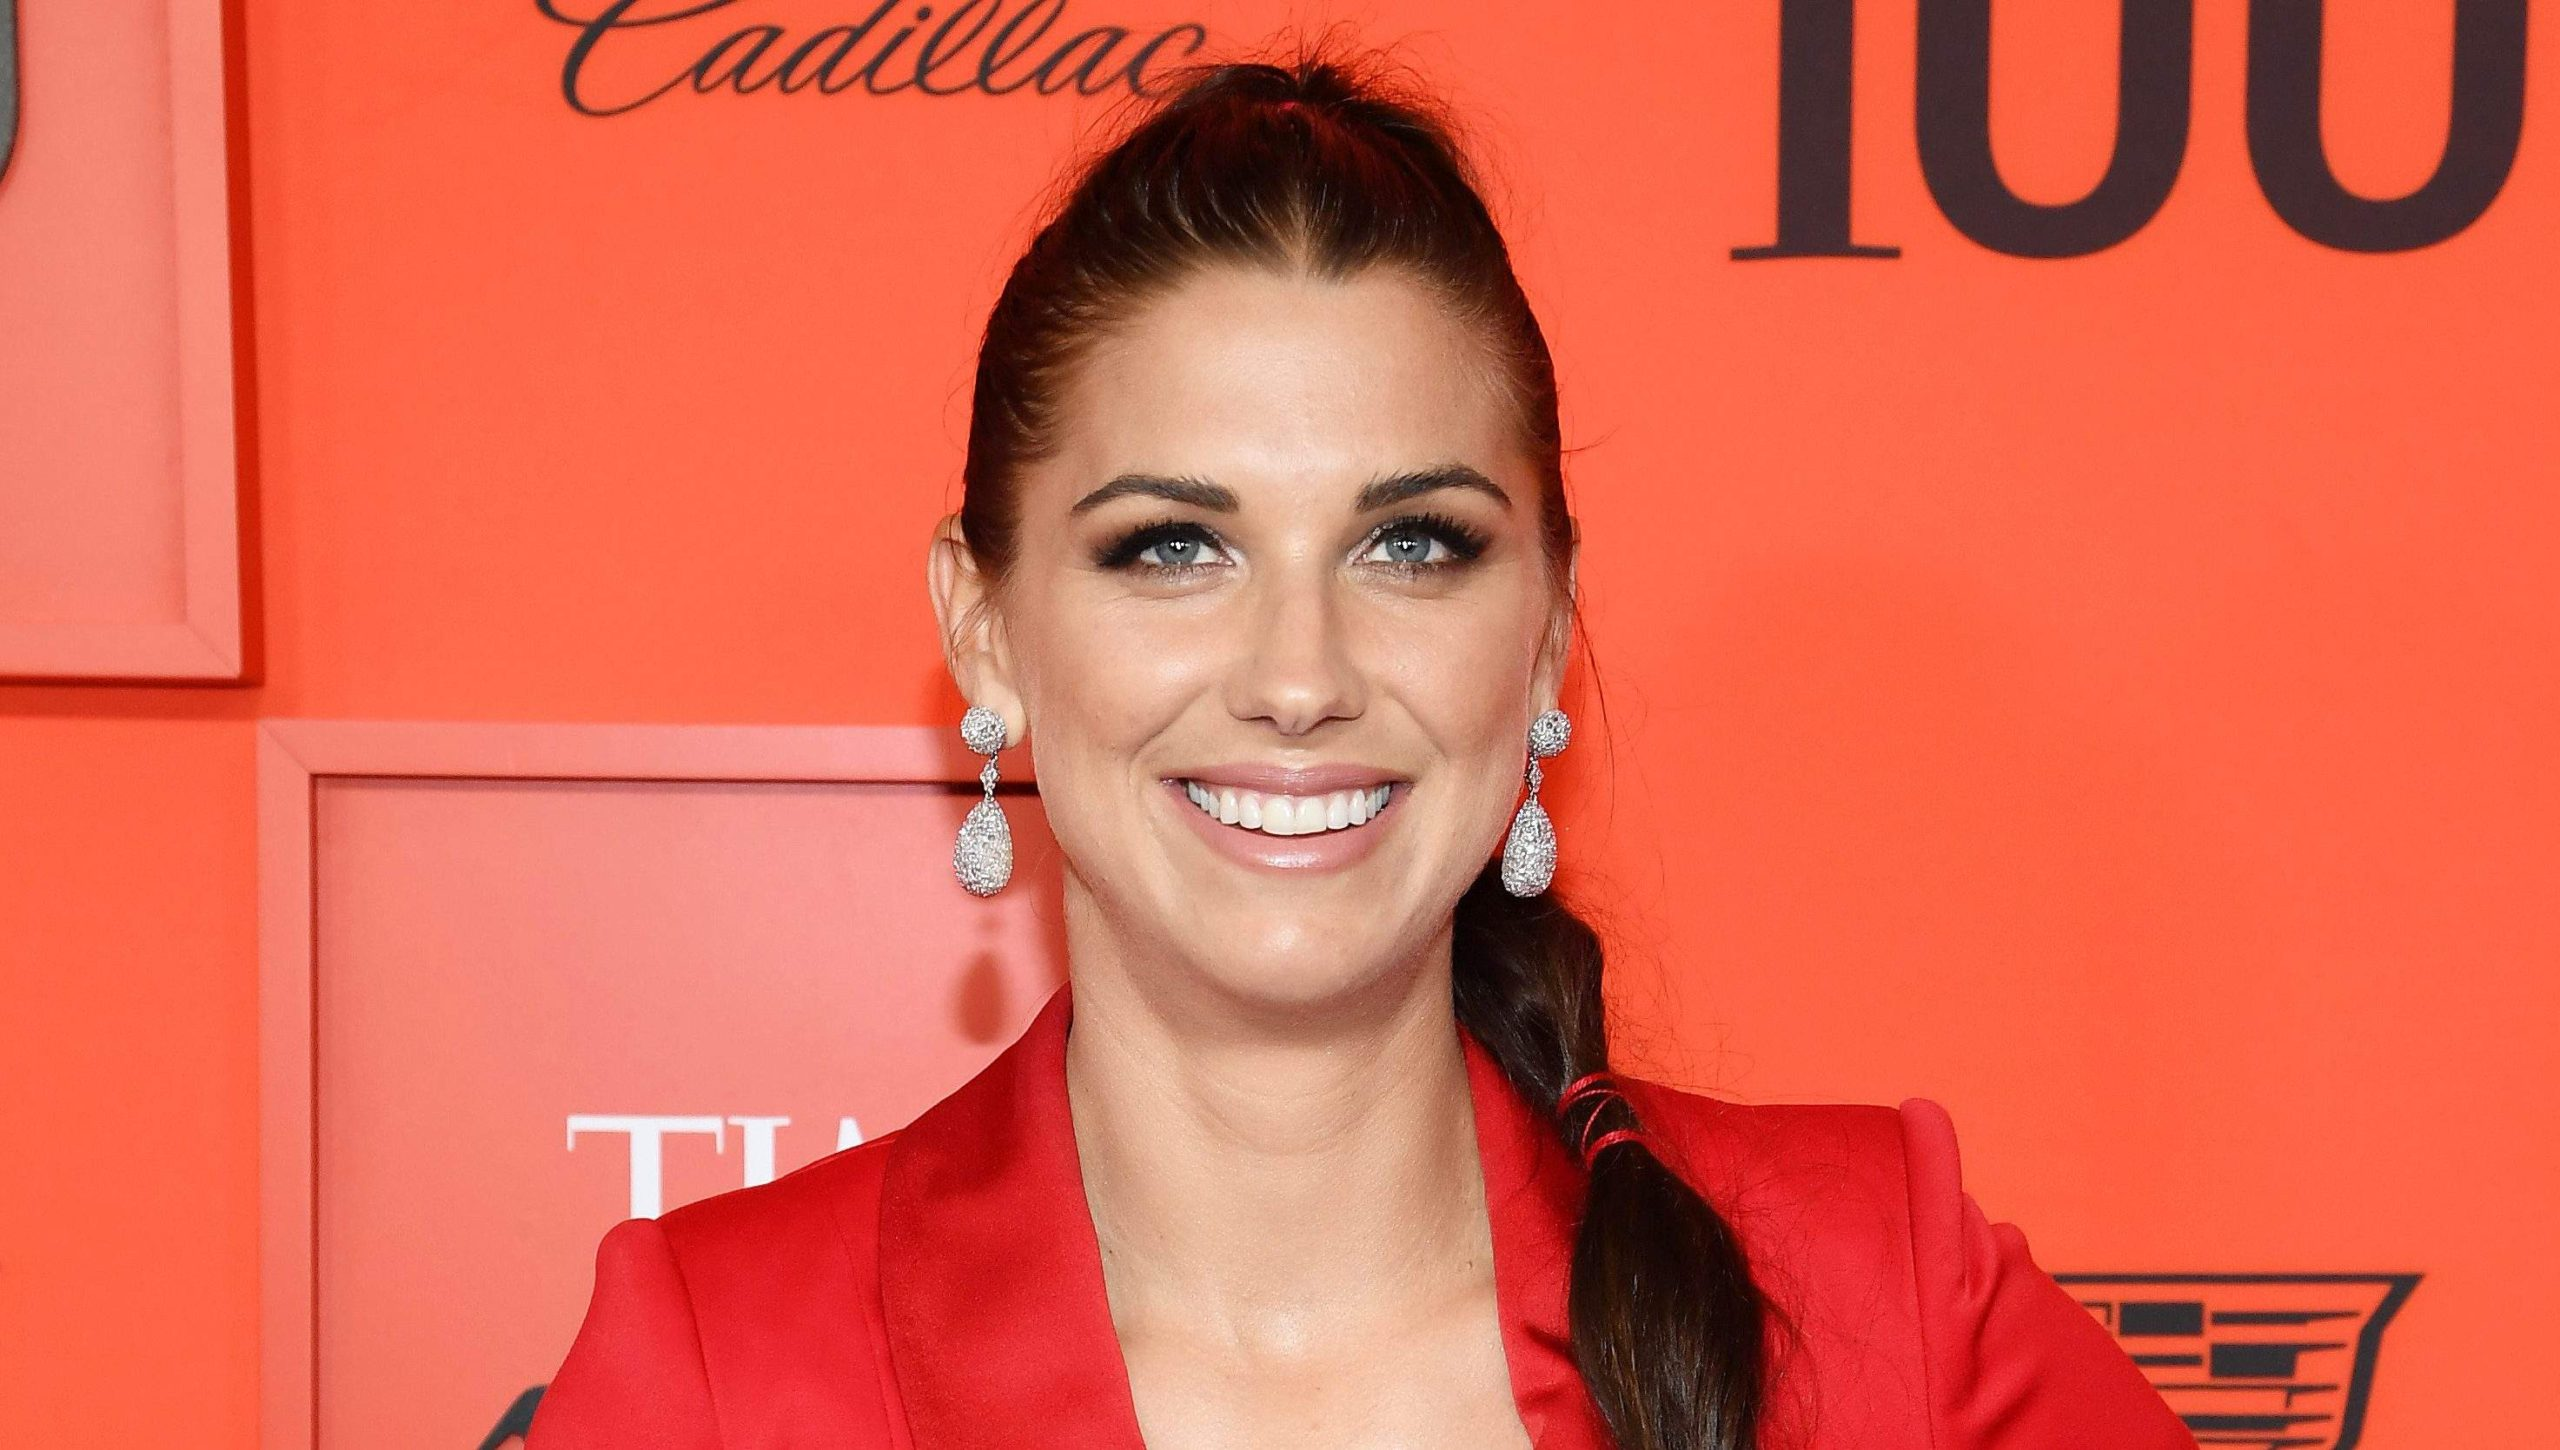 Alex Morgan Beautiful Eyes Wallpapers scaled - Alex Morgan Net Worth, Pics, Wallpapers, Career and Biography